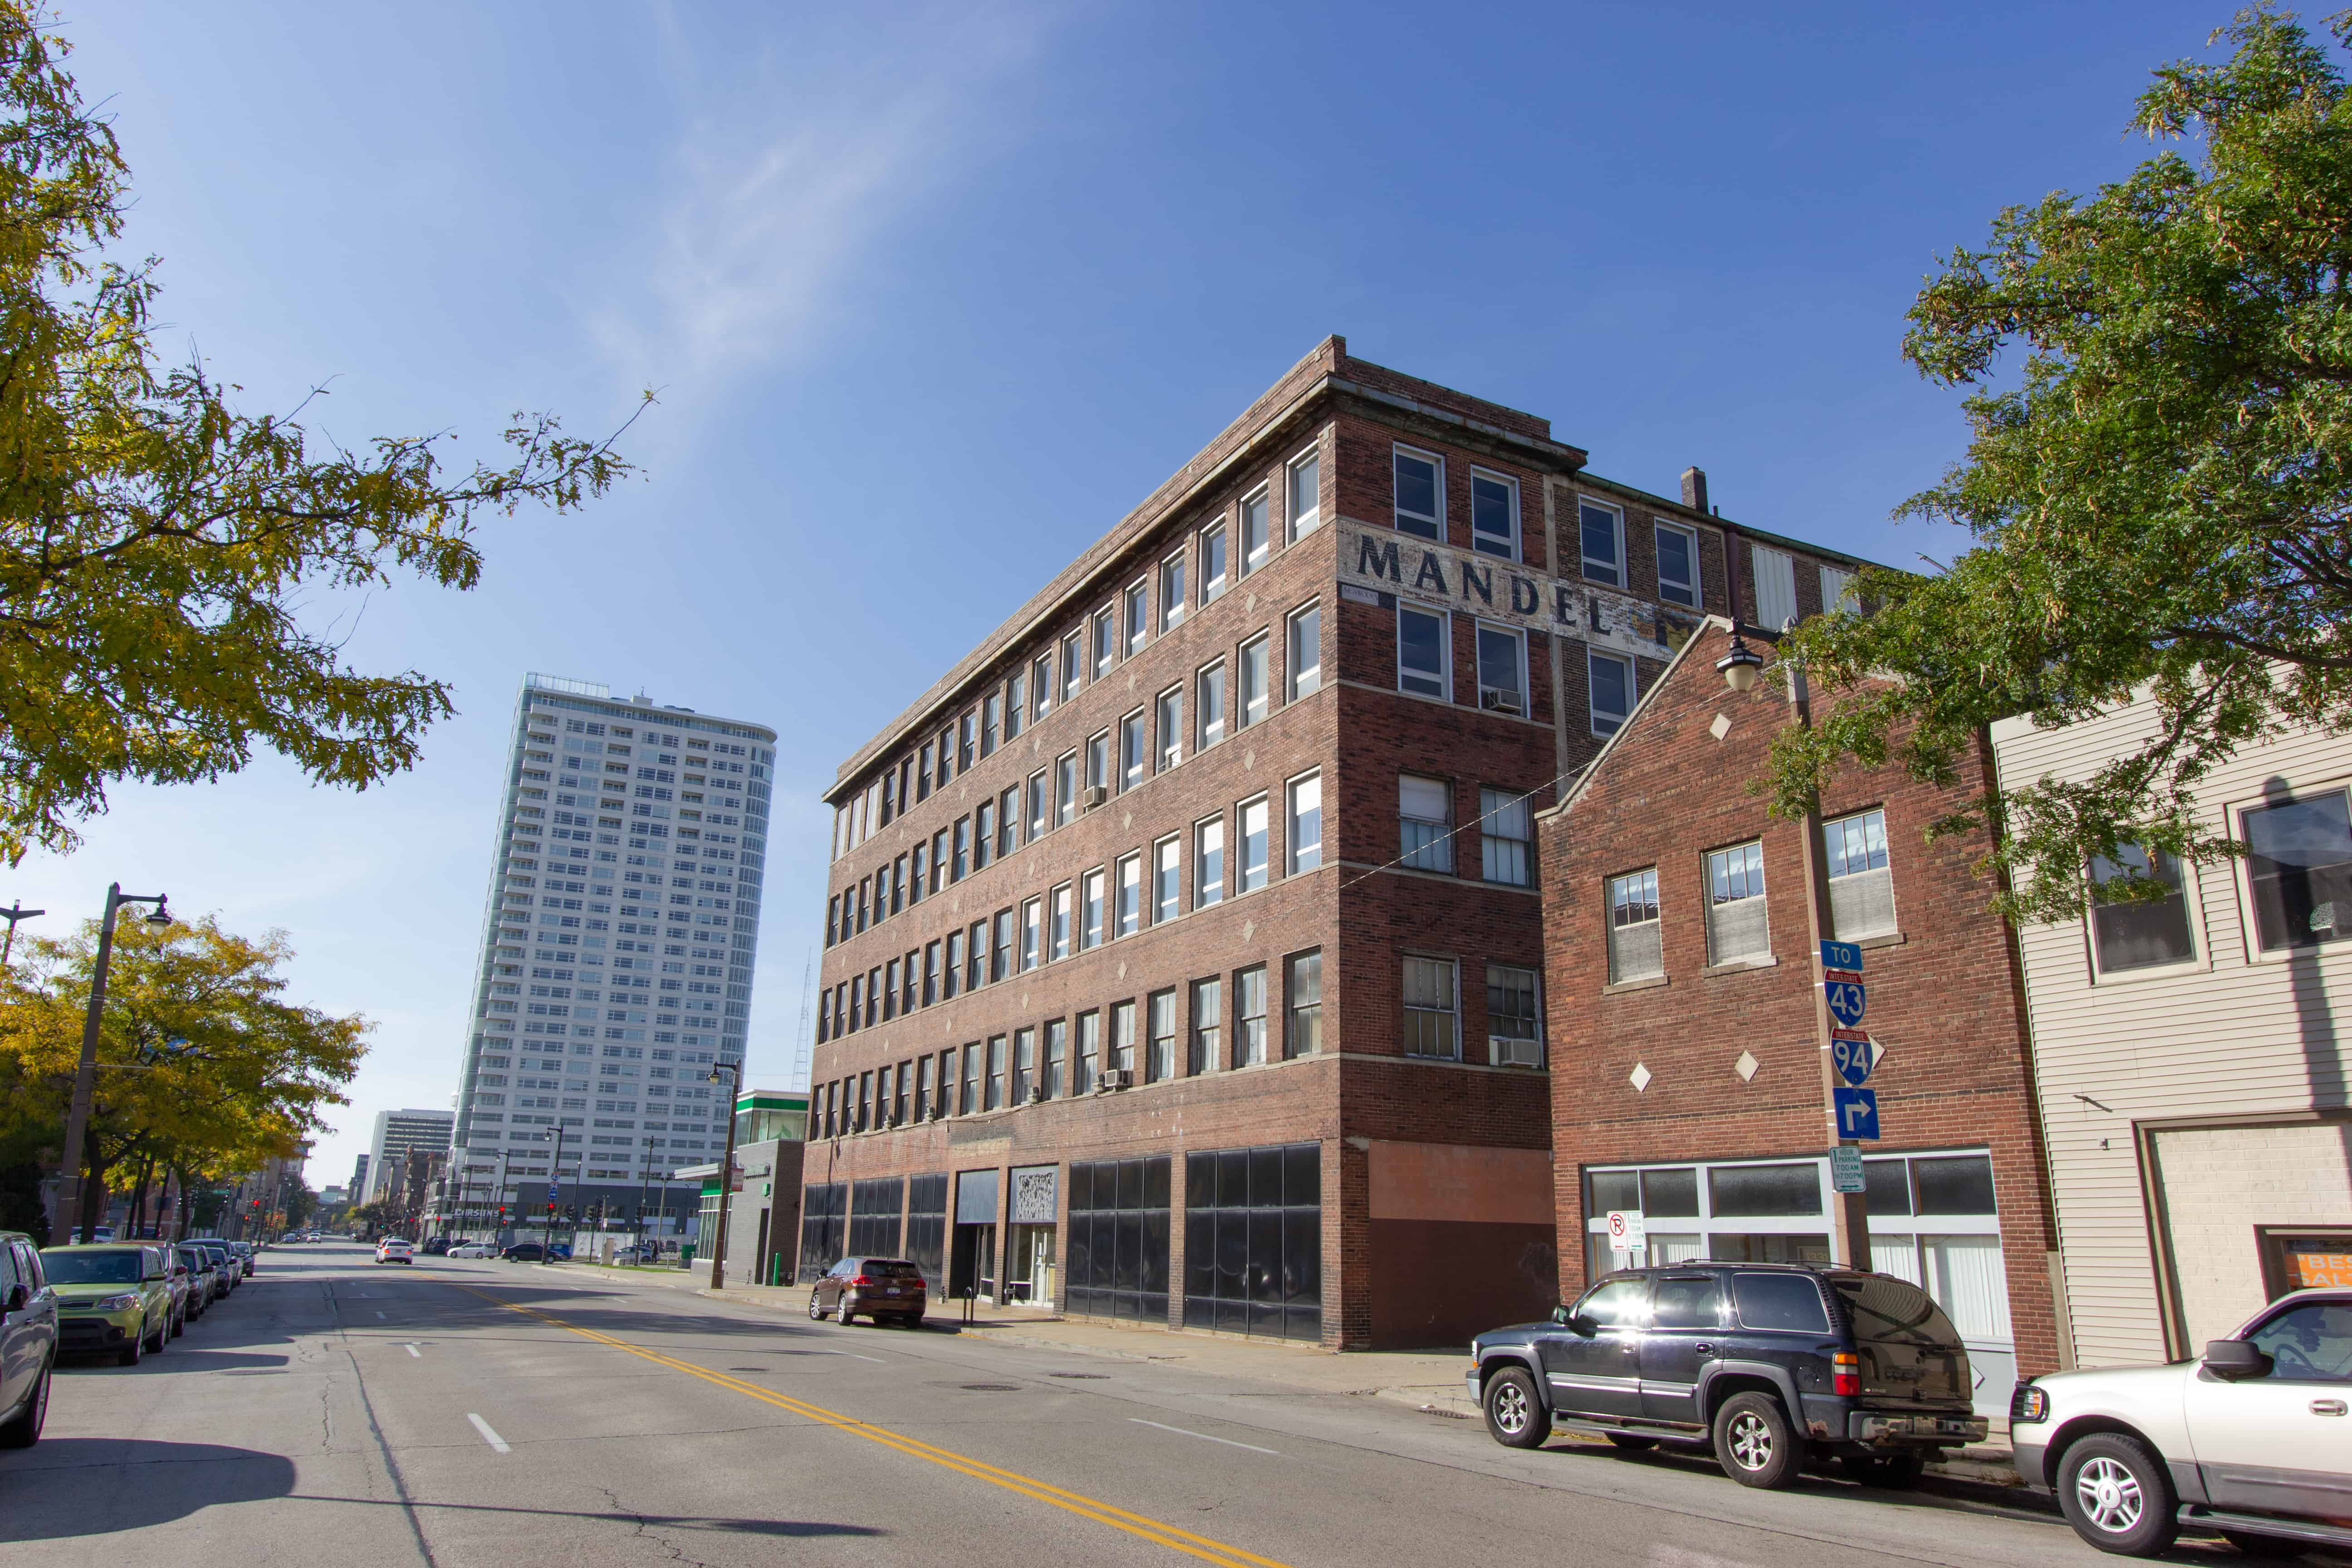 American Family Bringing 400 Jobs To Mandel Building In Downtown Milwaukee